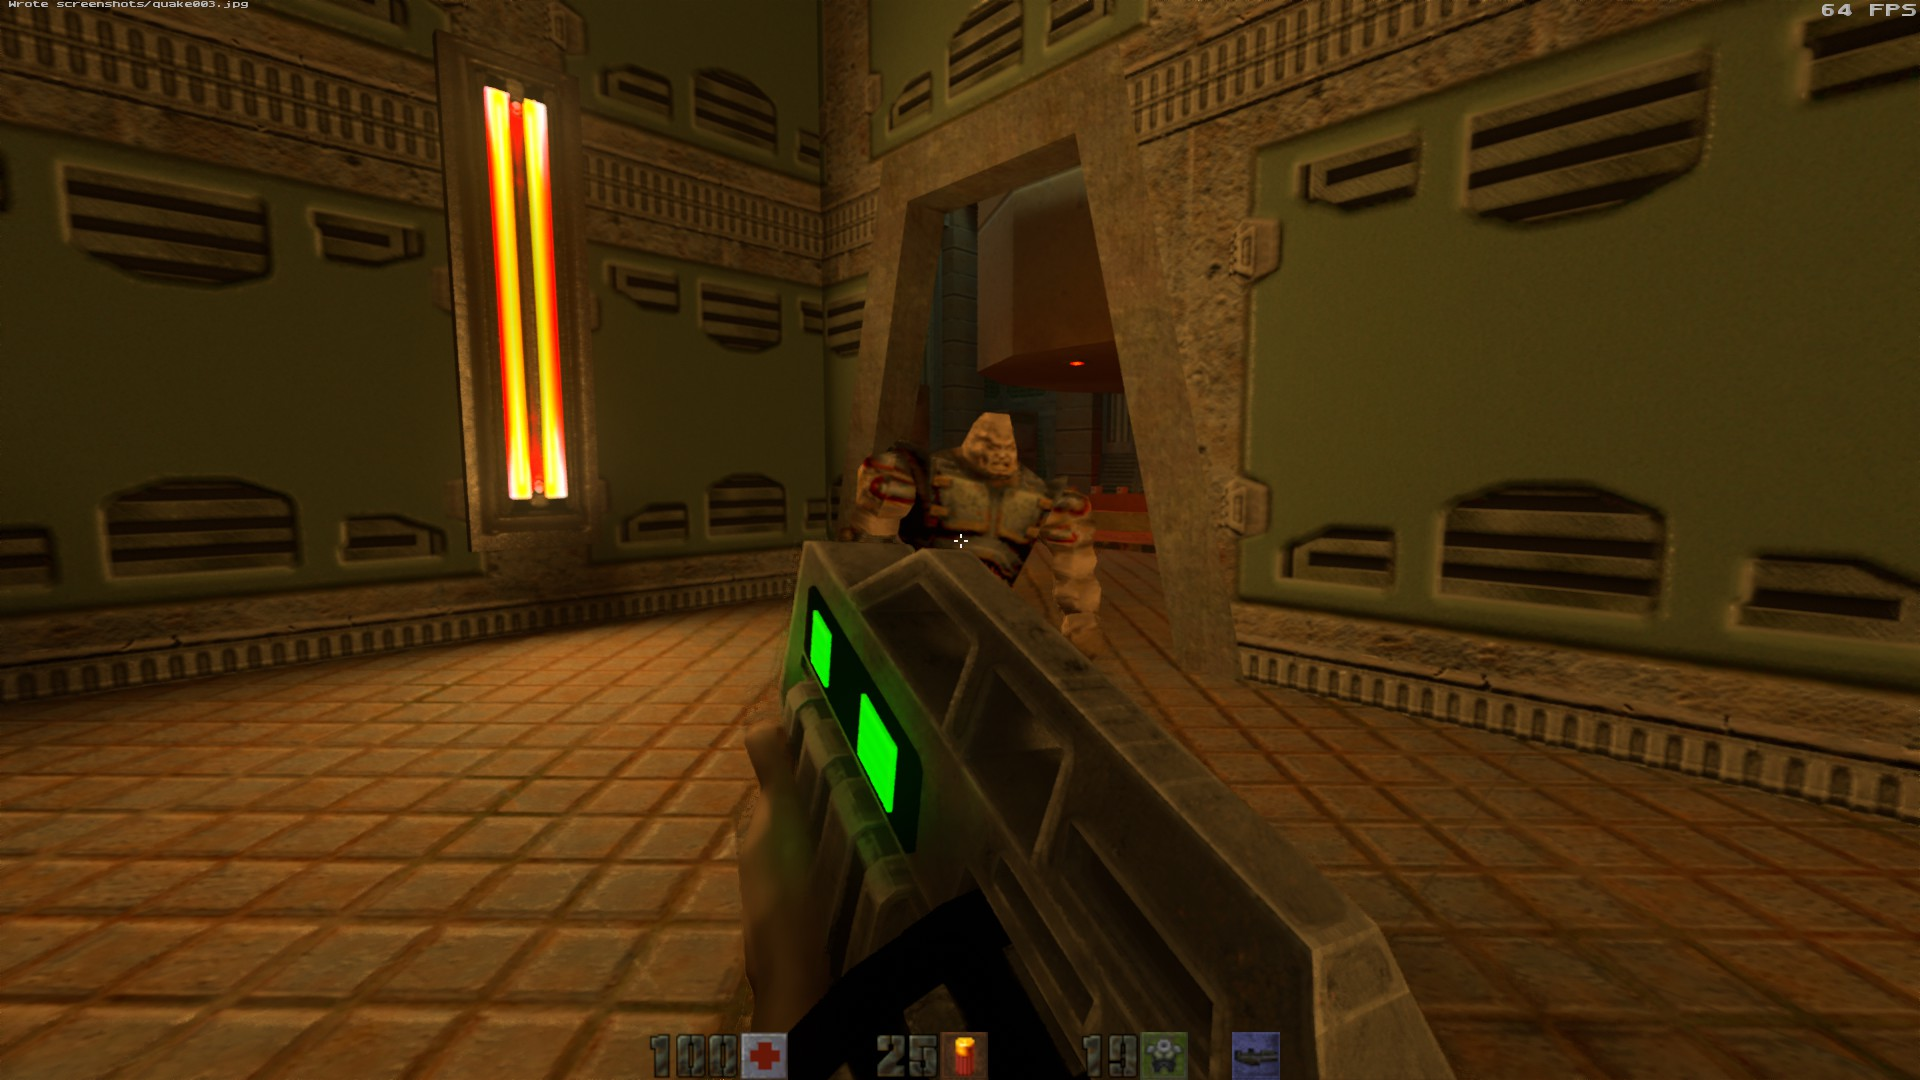 big_quake_ii_rtx.jpg